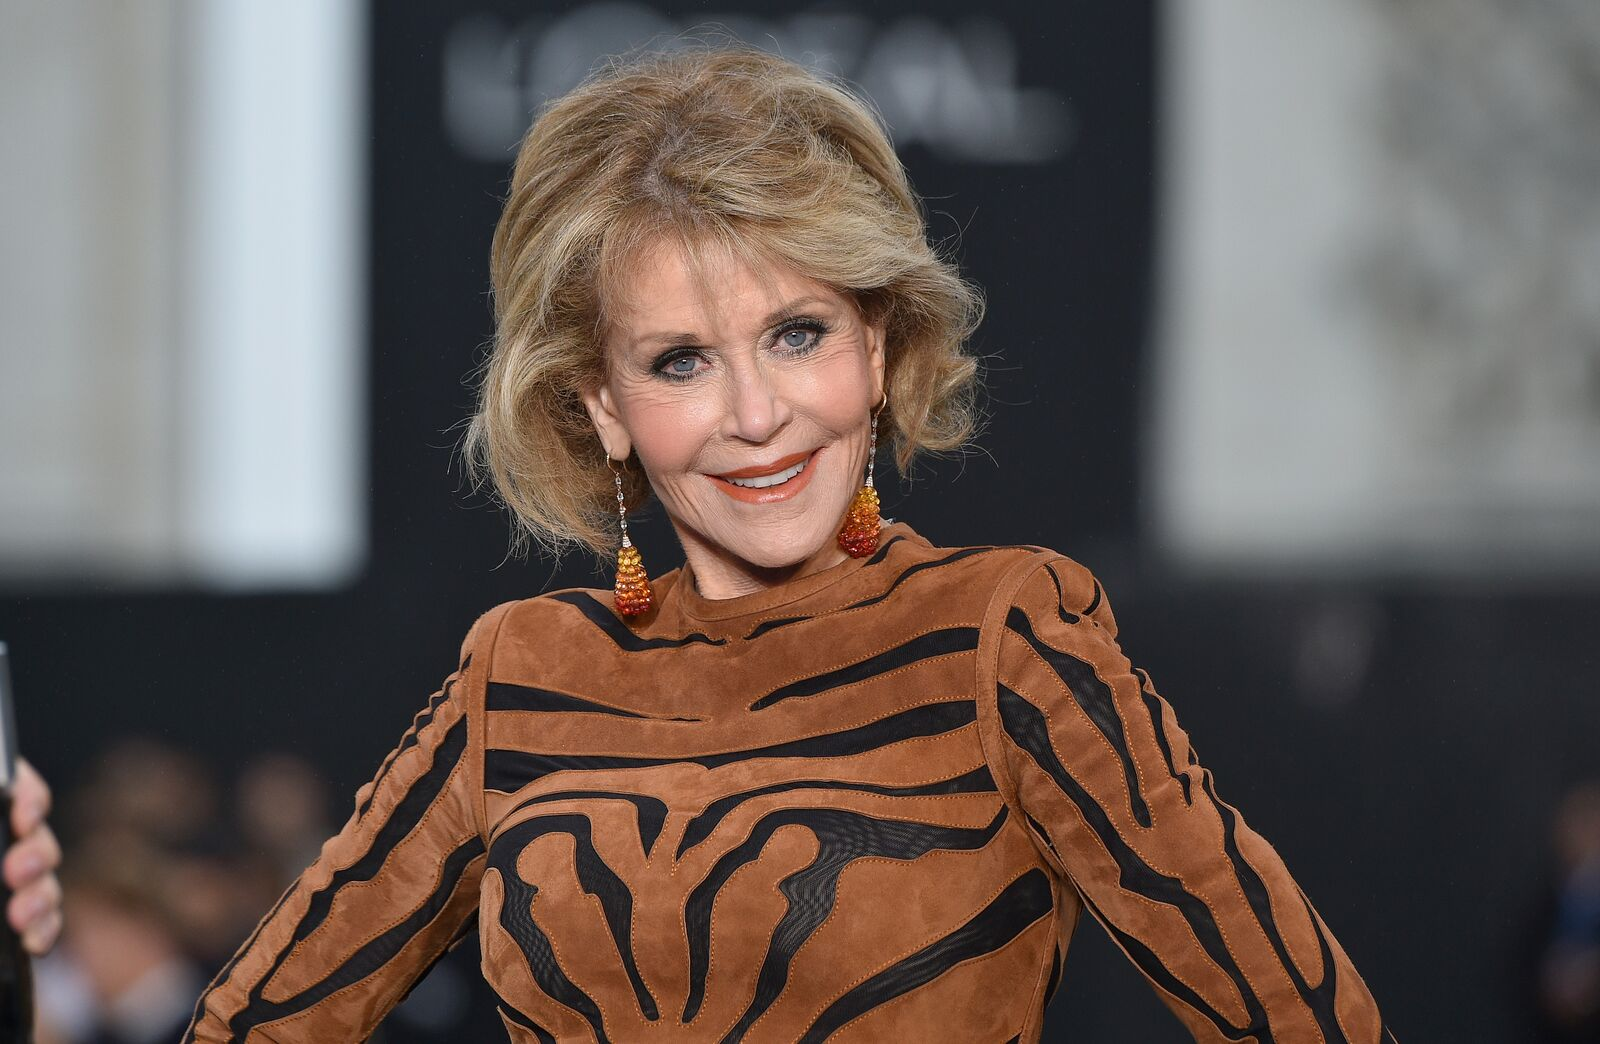 Jane Fonda at the rehearsal before Le Defile L'Oreal Paris as part of Paris Fashion Week Womenswear Spring/Summer 2018 at Avenue Des Champs Elysees on October 1, 2017 | Photo: Getty Images